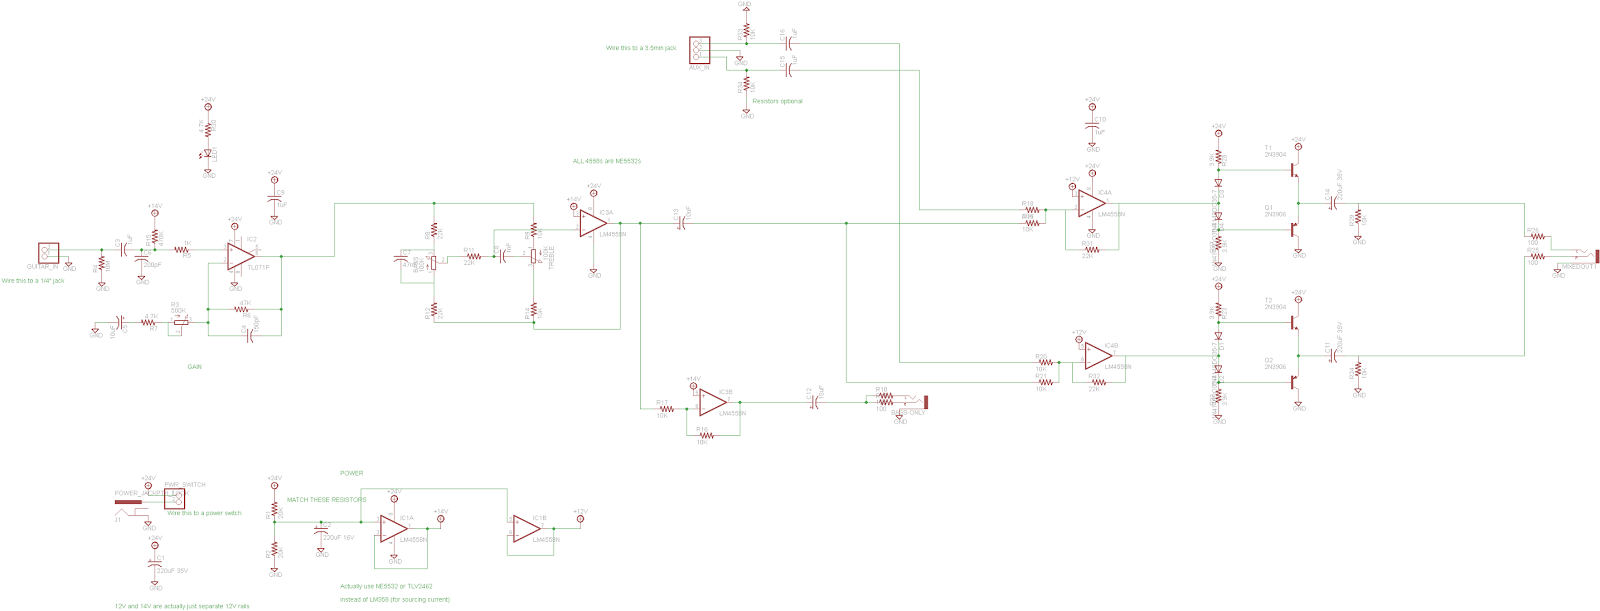 Misadventures Free Project Circuit Schematic Passive Baxandall Tone Control All Lm358s And 4558s Are Actually Ne5532s Because Laziness